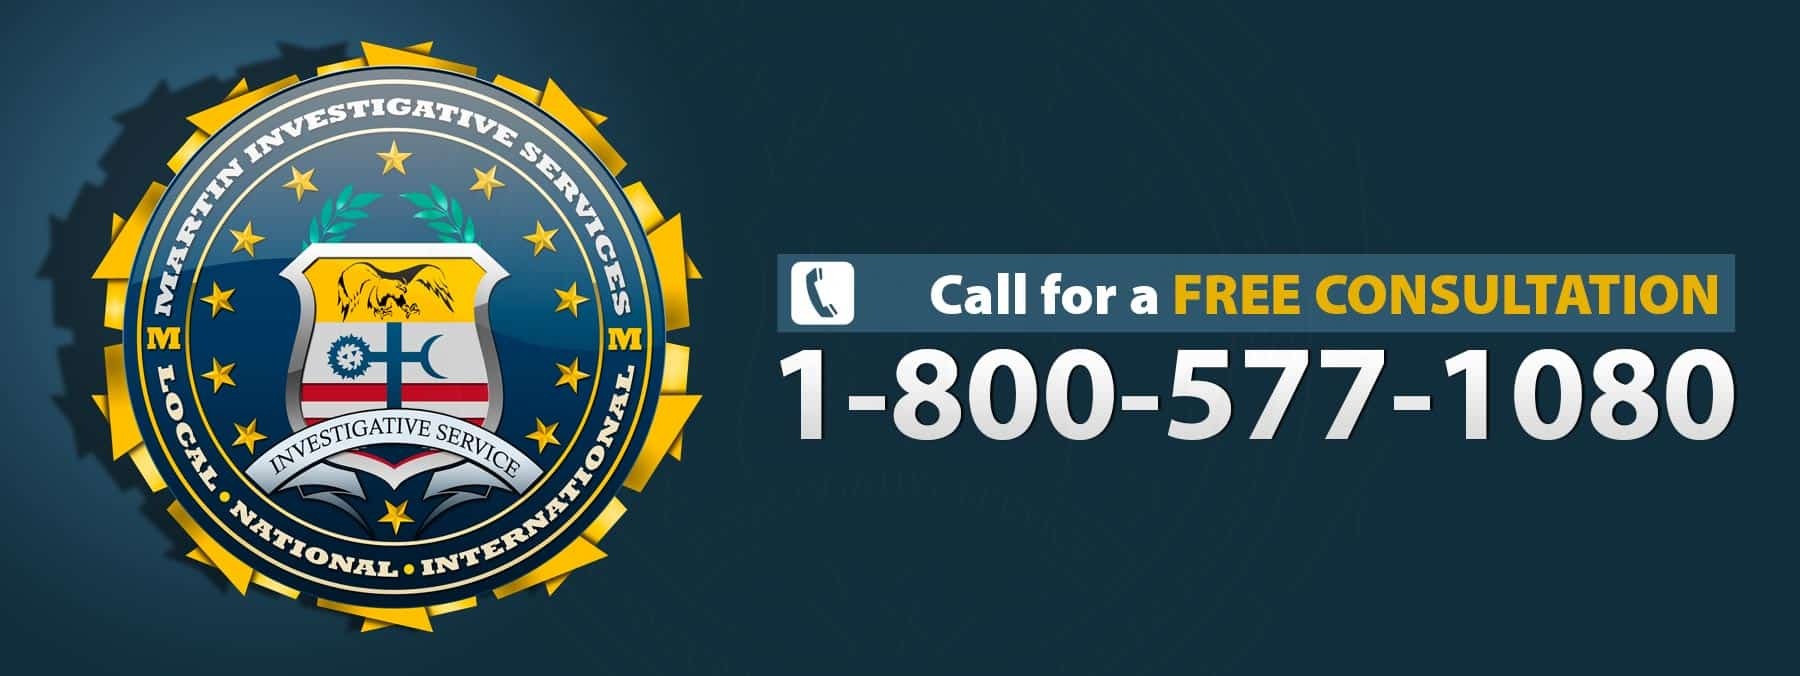 Call for a free consultation with Martin Investigative Services: 1-800-577-1080